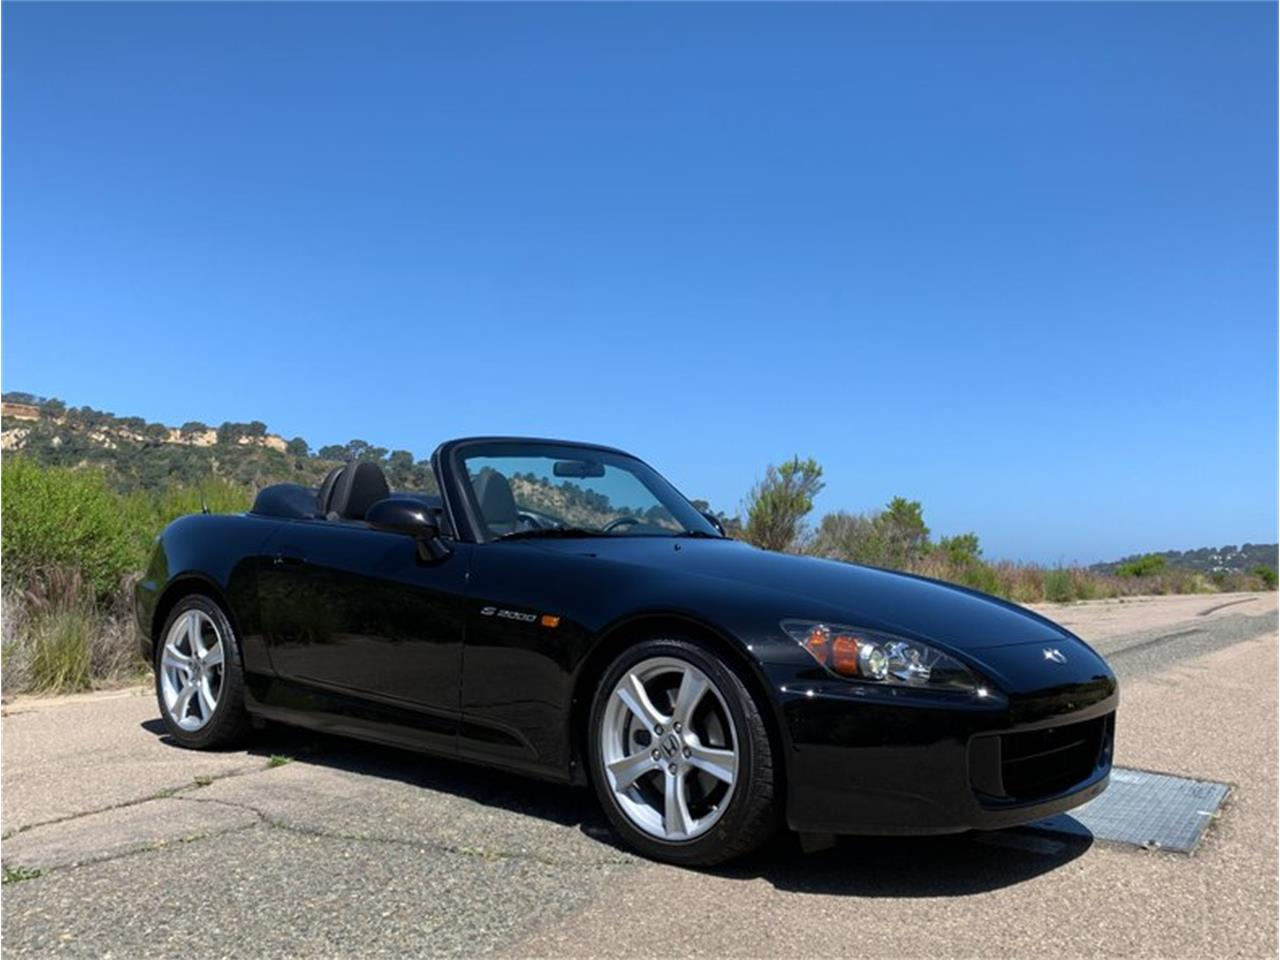 2009 Honda S2000 for sale in San Diego, CA – photo 9